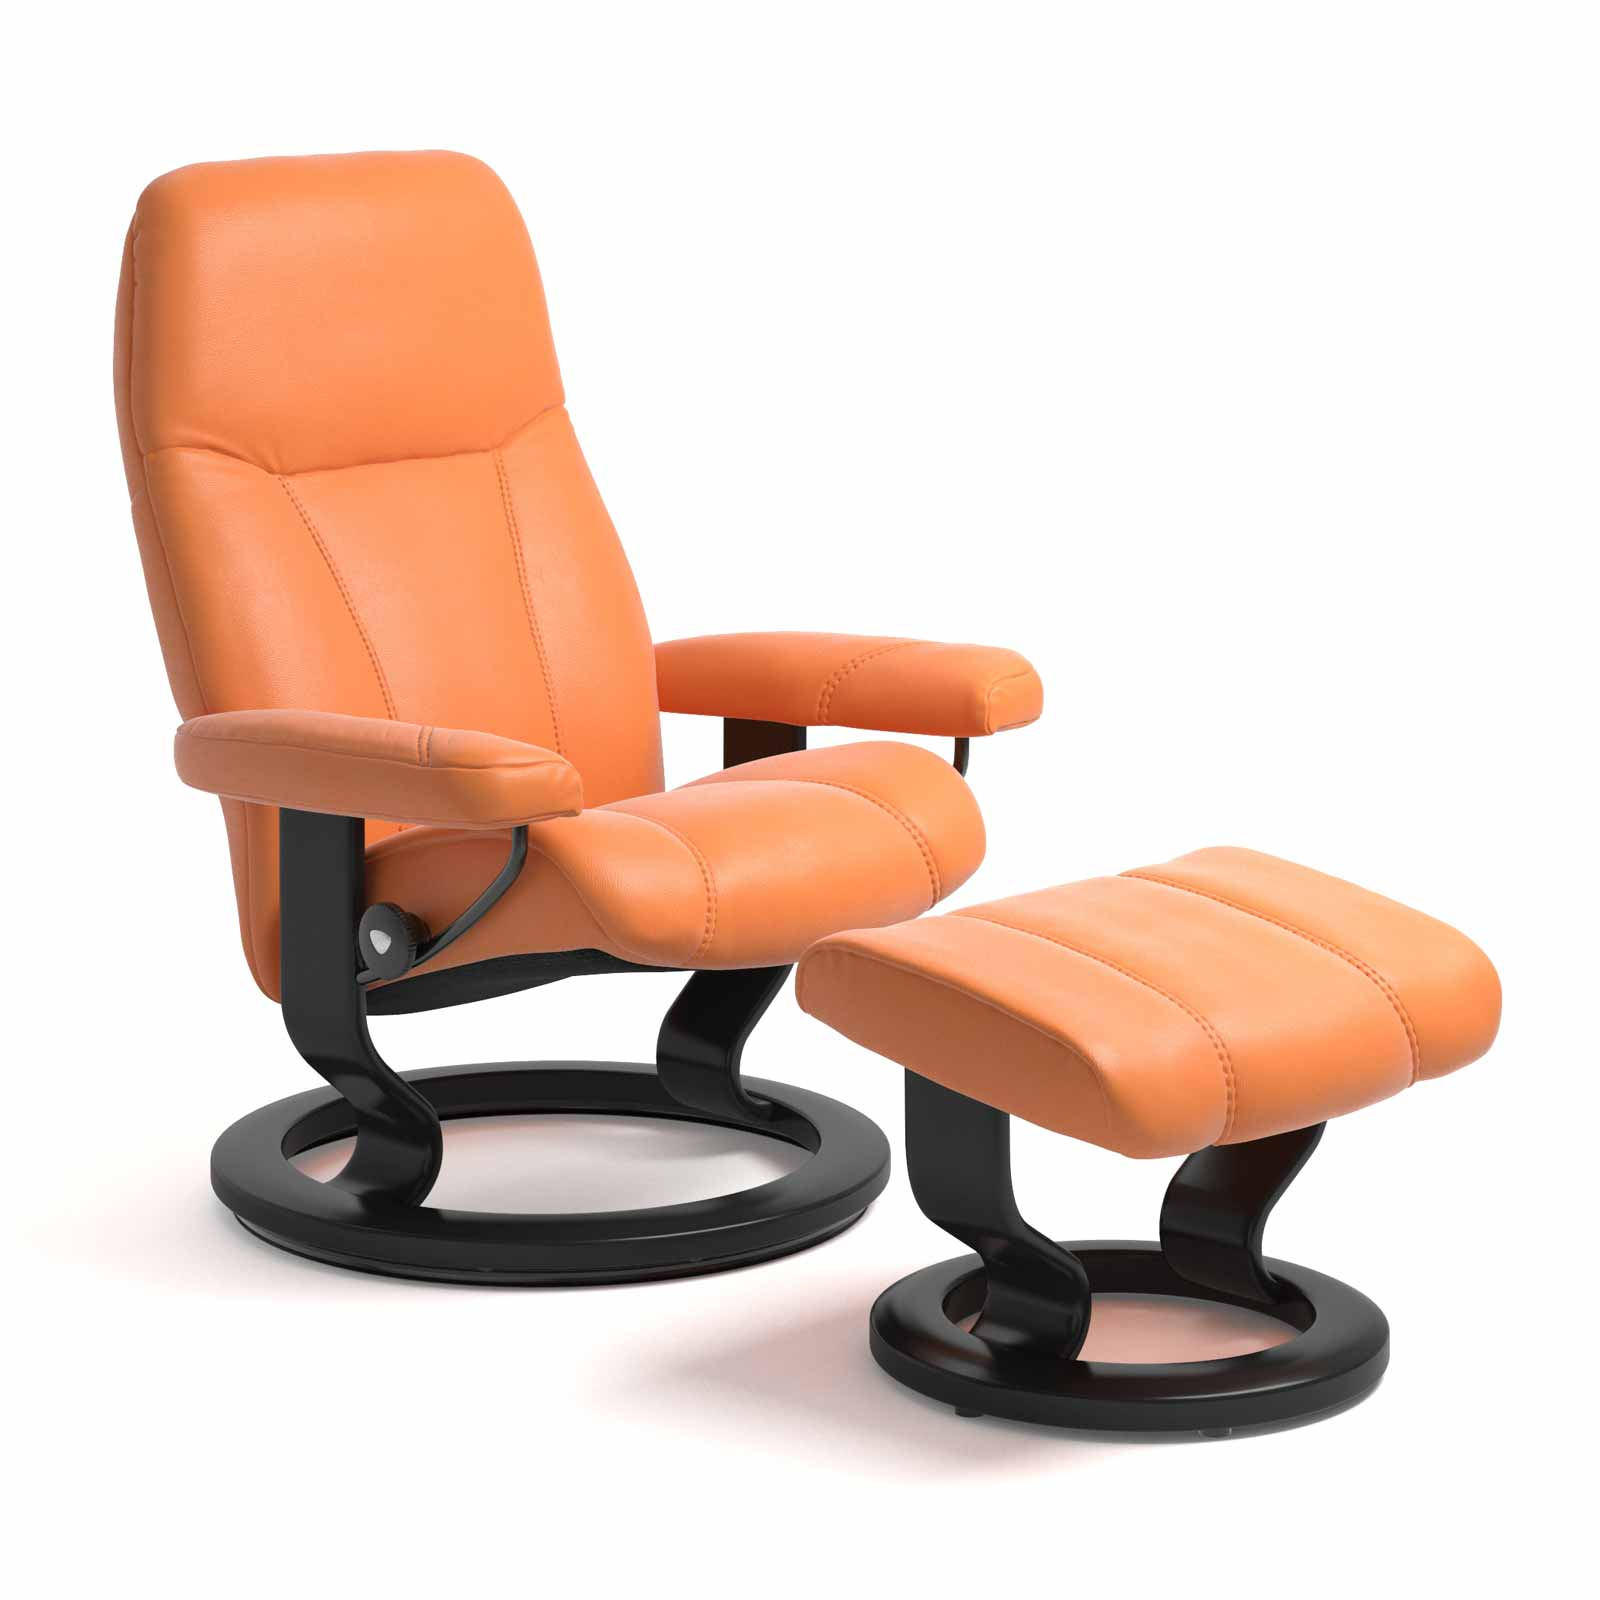 Stressless Consul Classic Apricot Orange Mit Hocker Stressless